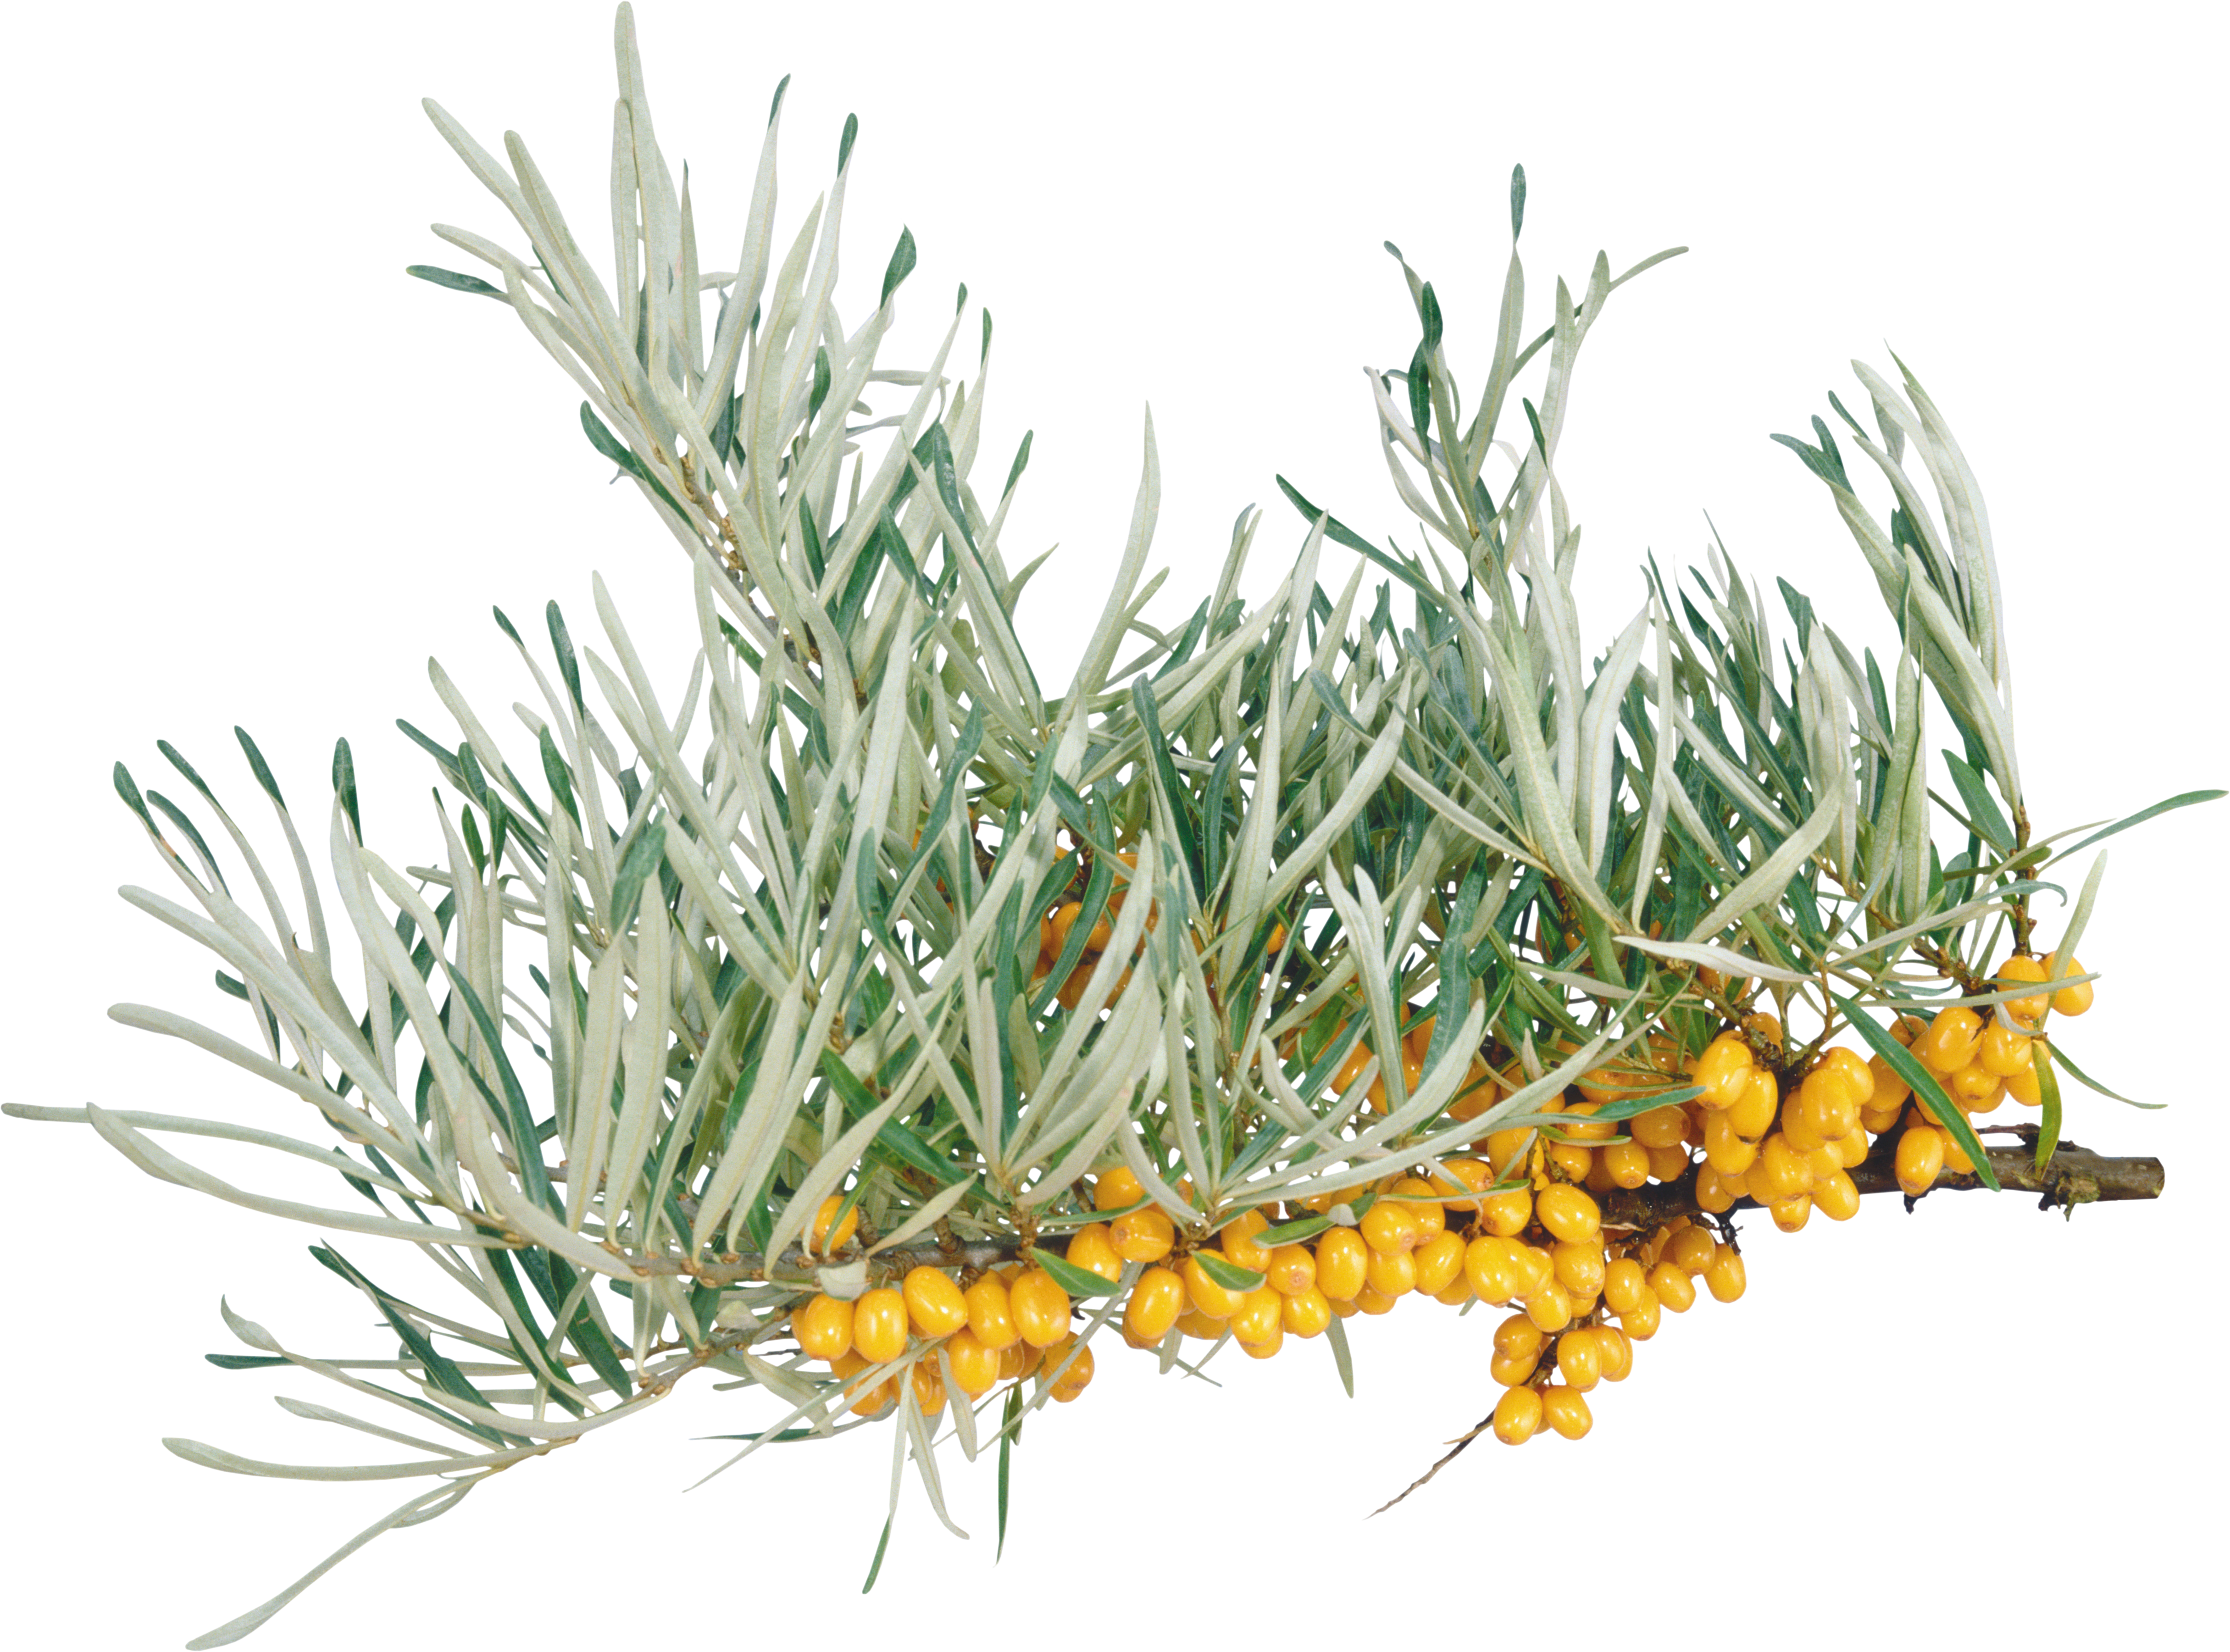 Sea plant png. Buckthorn images free download